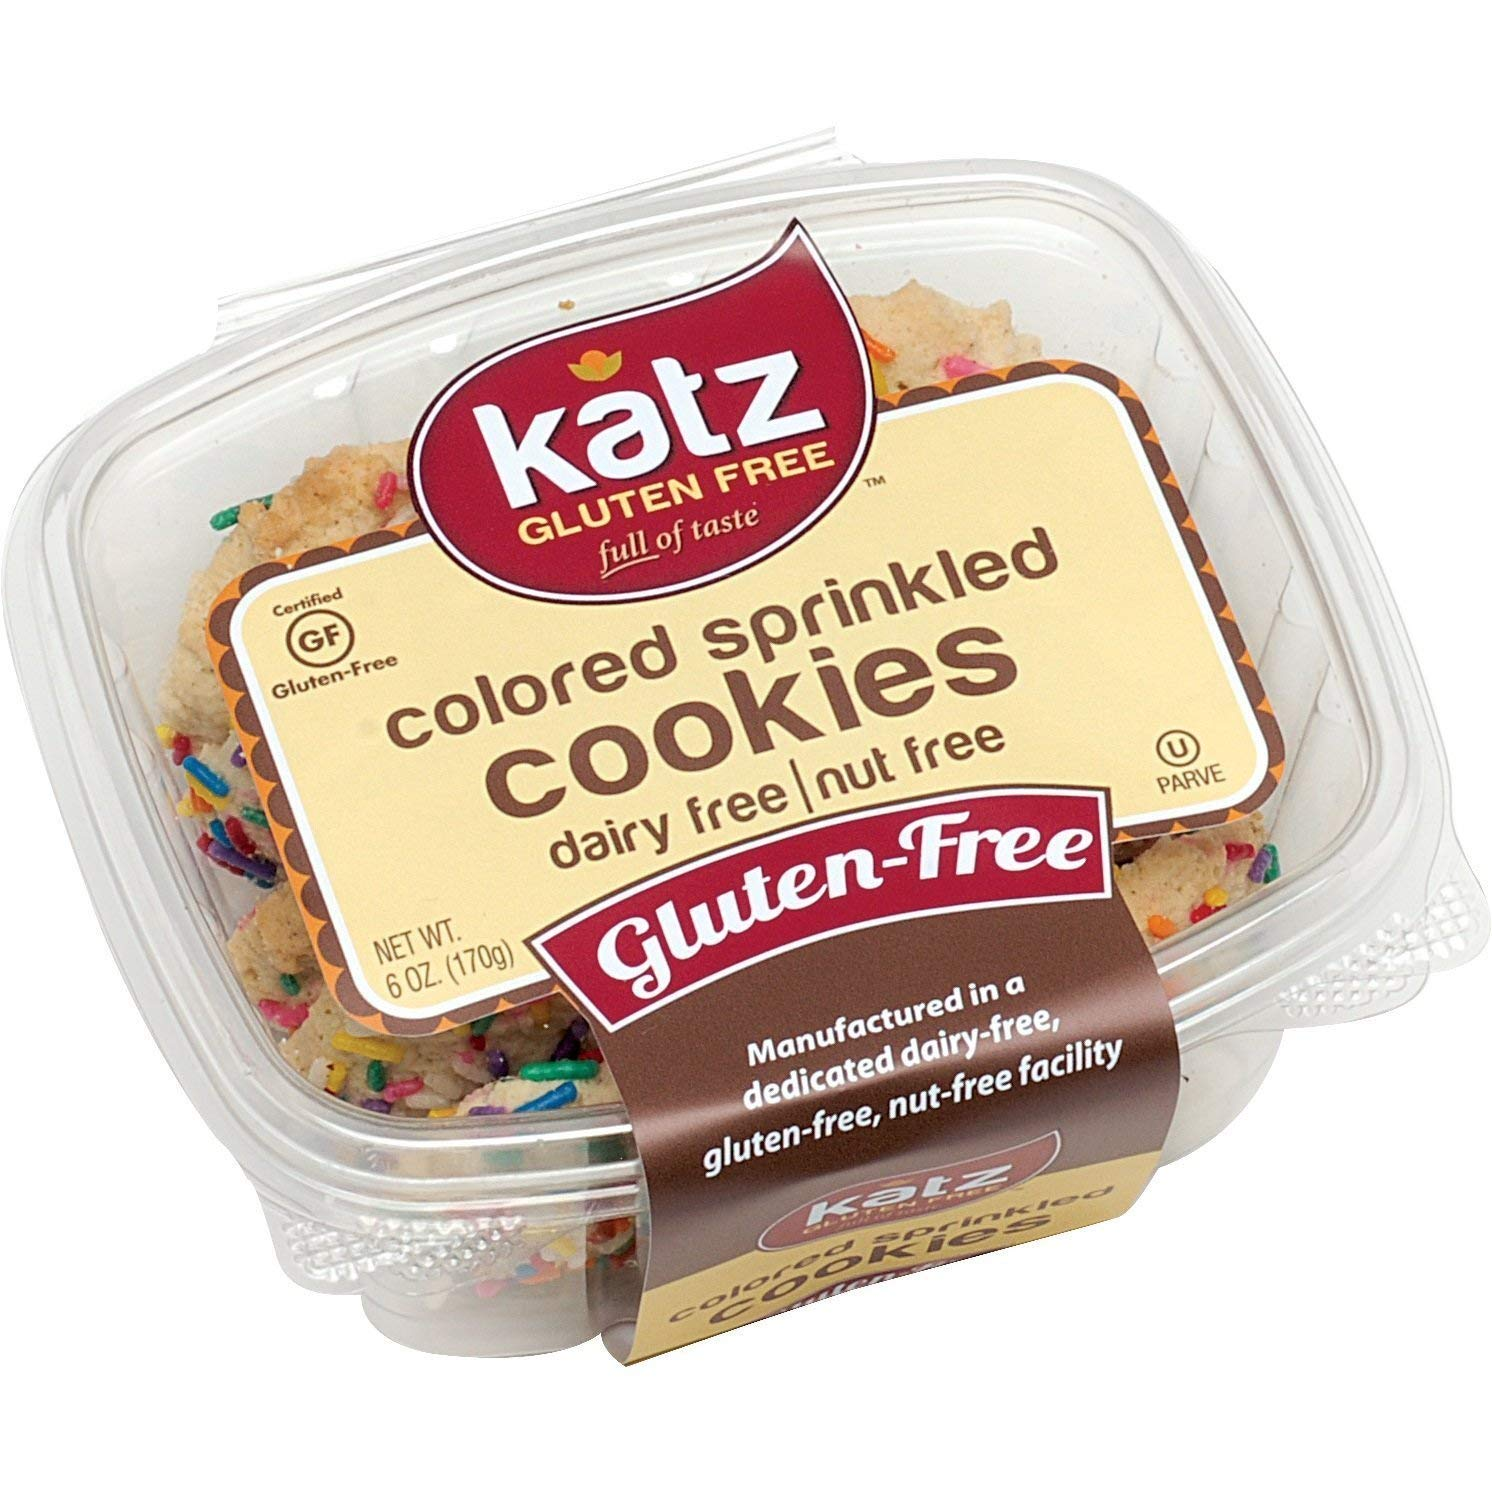 Katz Gluten Free Colored Sprinkle Cookies | Dairy, Nut and Gluten Free | Kosher (6 Packs, 6 Ounce Each) by Katz Gluten Free